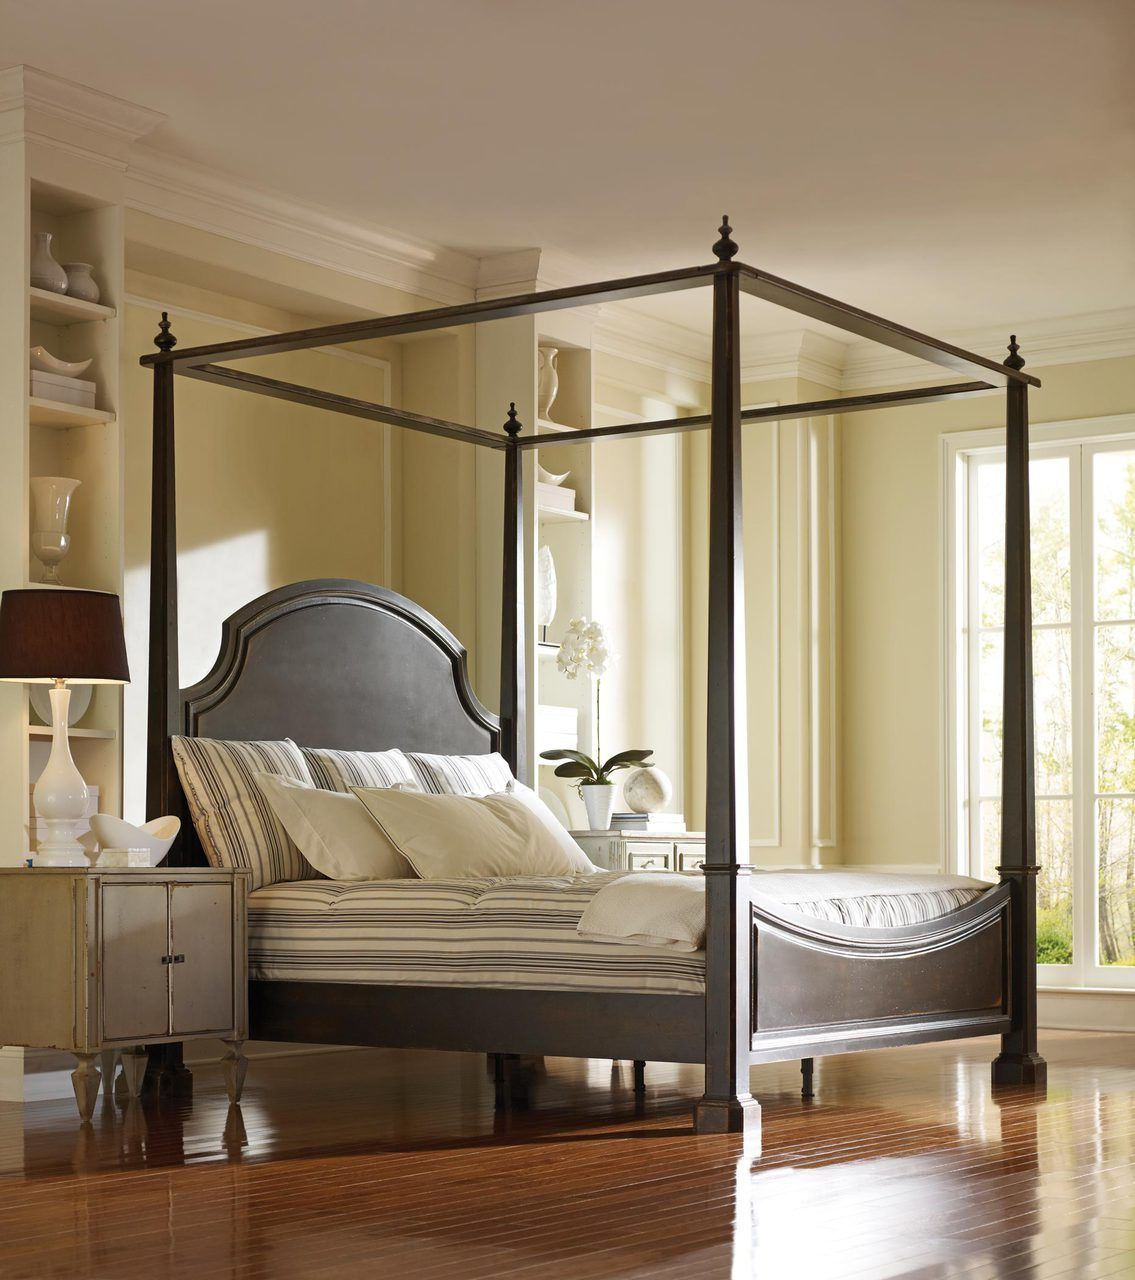 Shop habersham home now to take off all standard furniture items